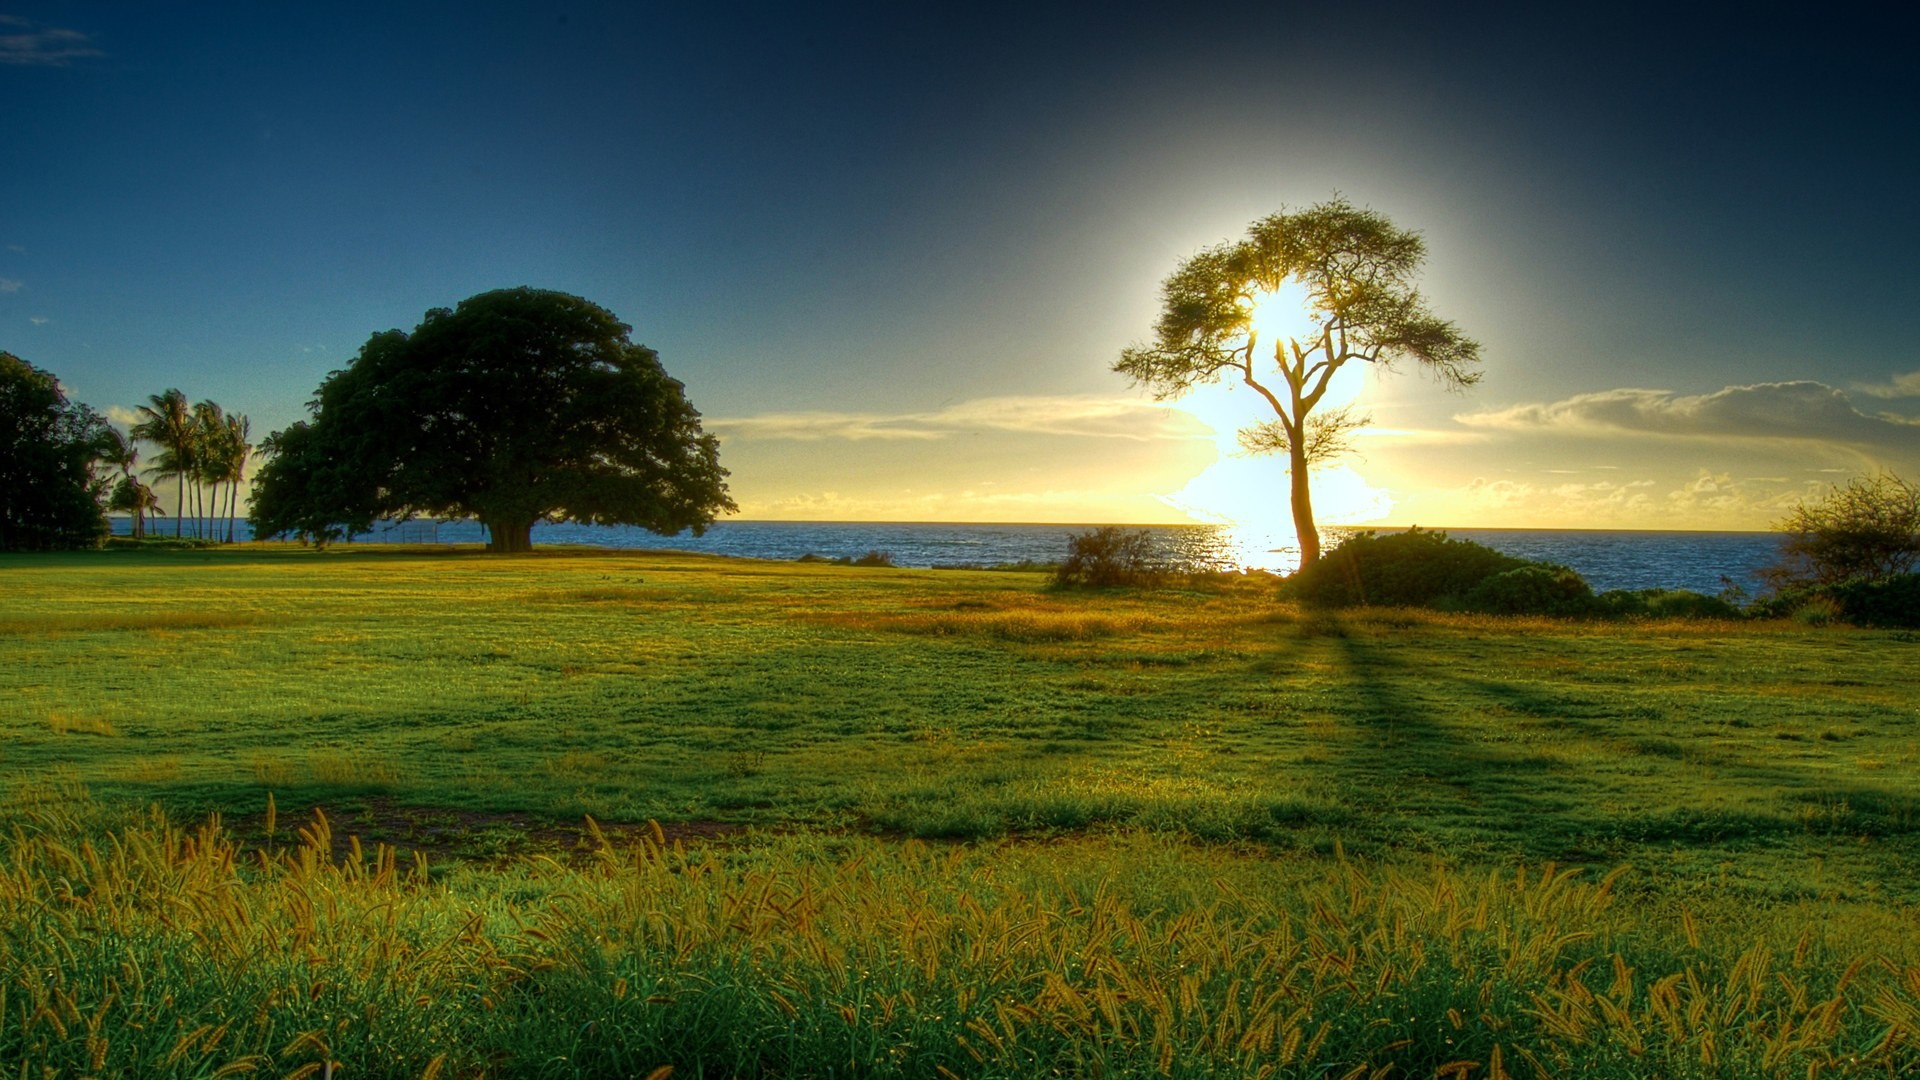 Beautiful Nature Wallpapers for Background HD Wallpaper of Nature .